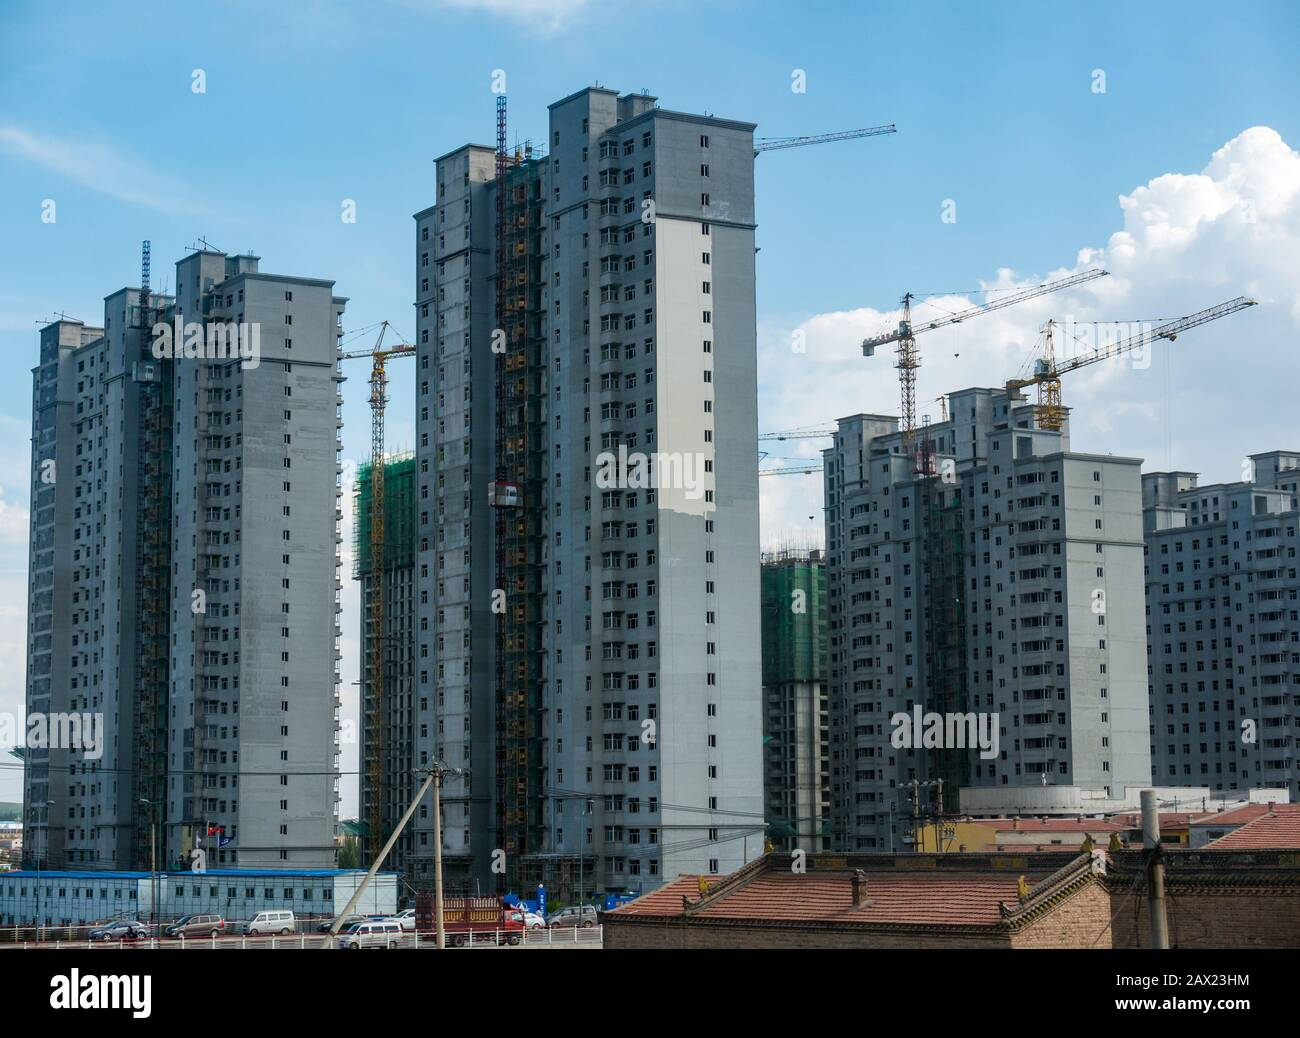 High rise apartment tower blocks under construction towering above traditional buildings,  Jining, China, Asia Stock Photo